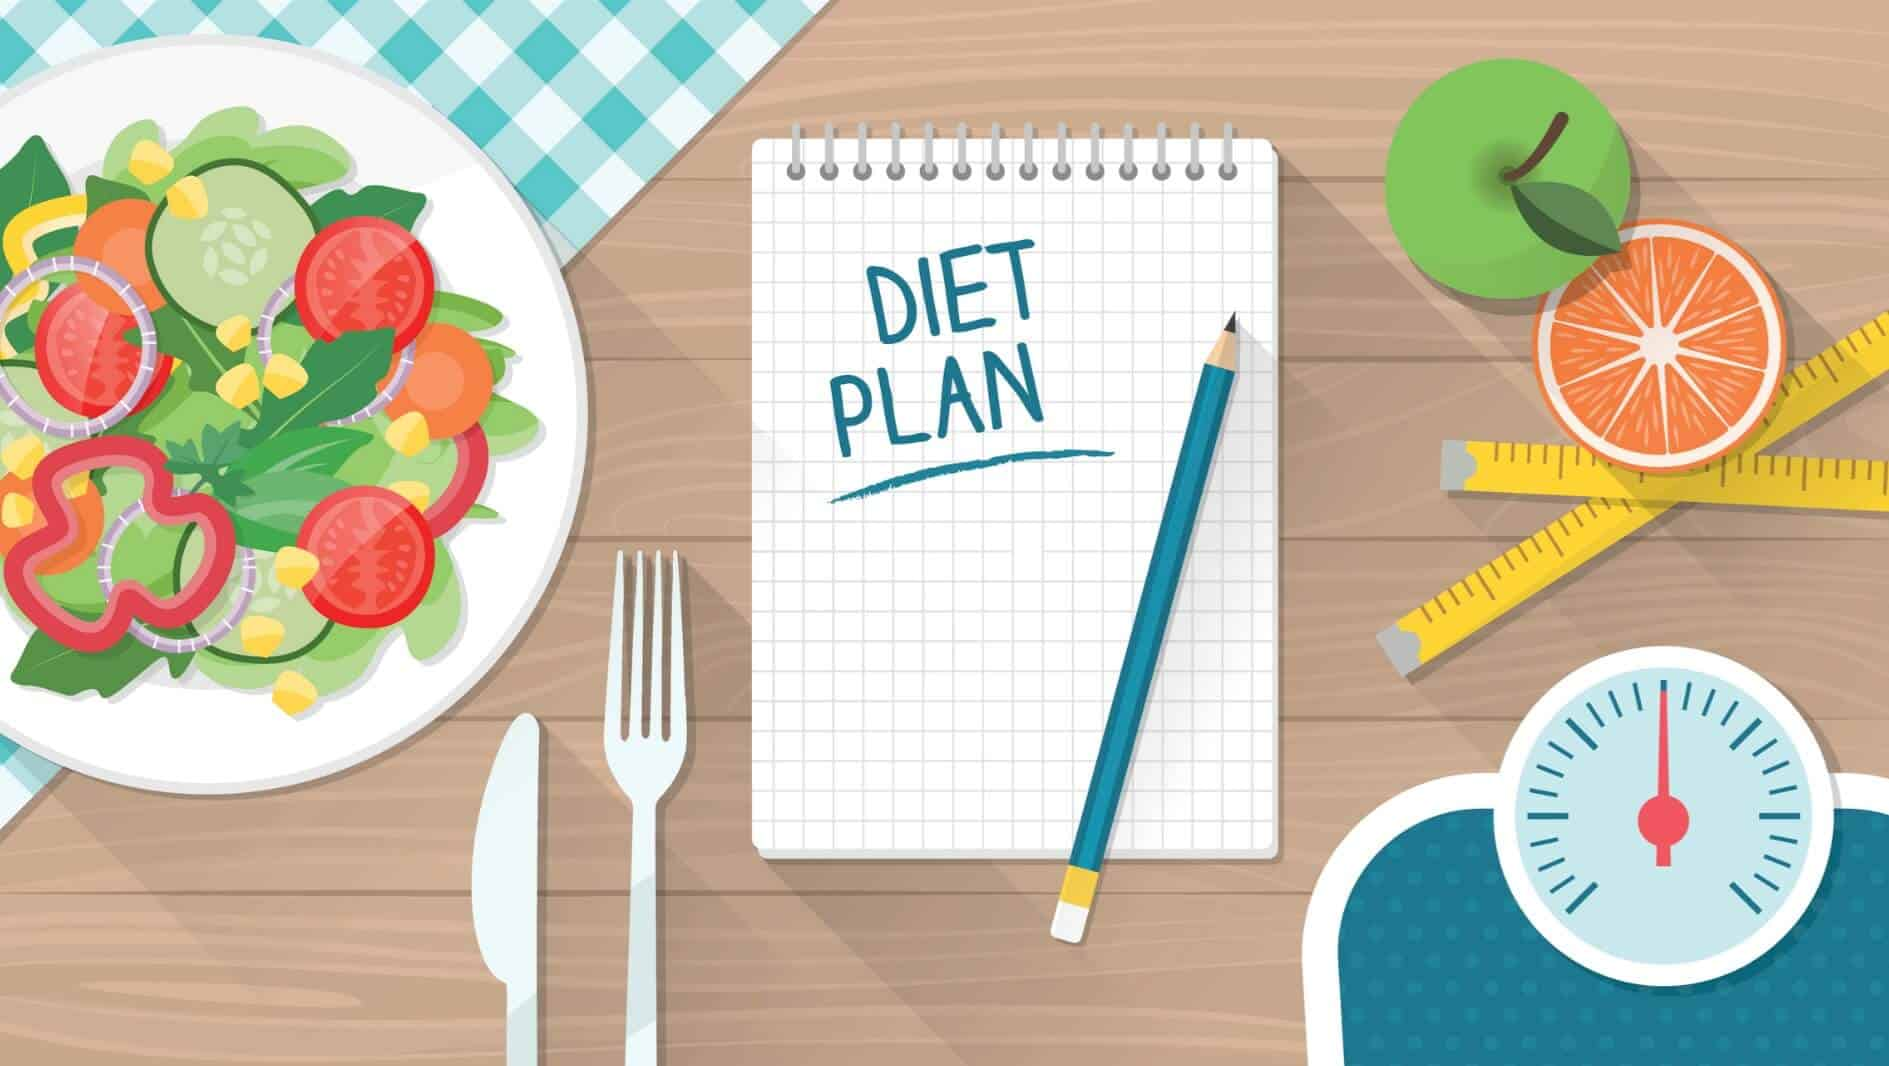 Calorie Counting and Meal Planning